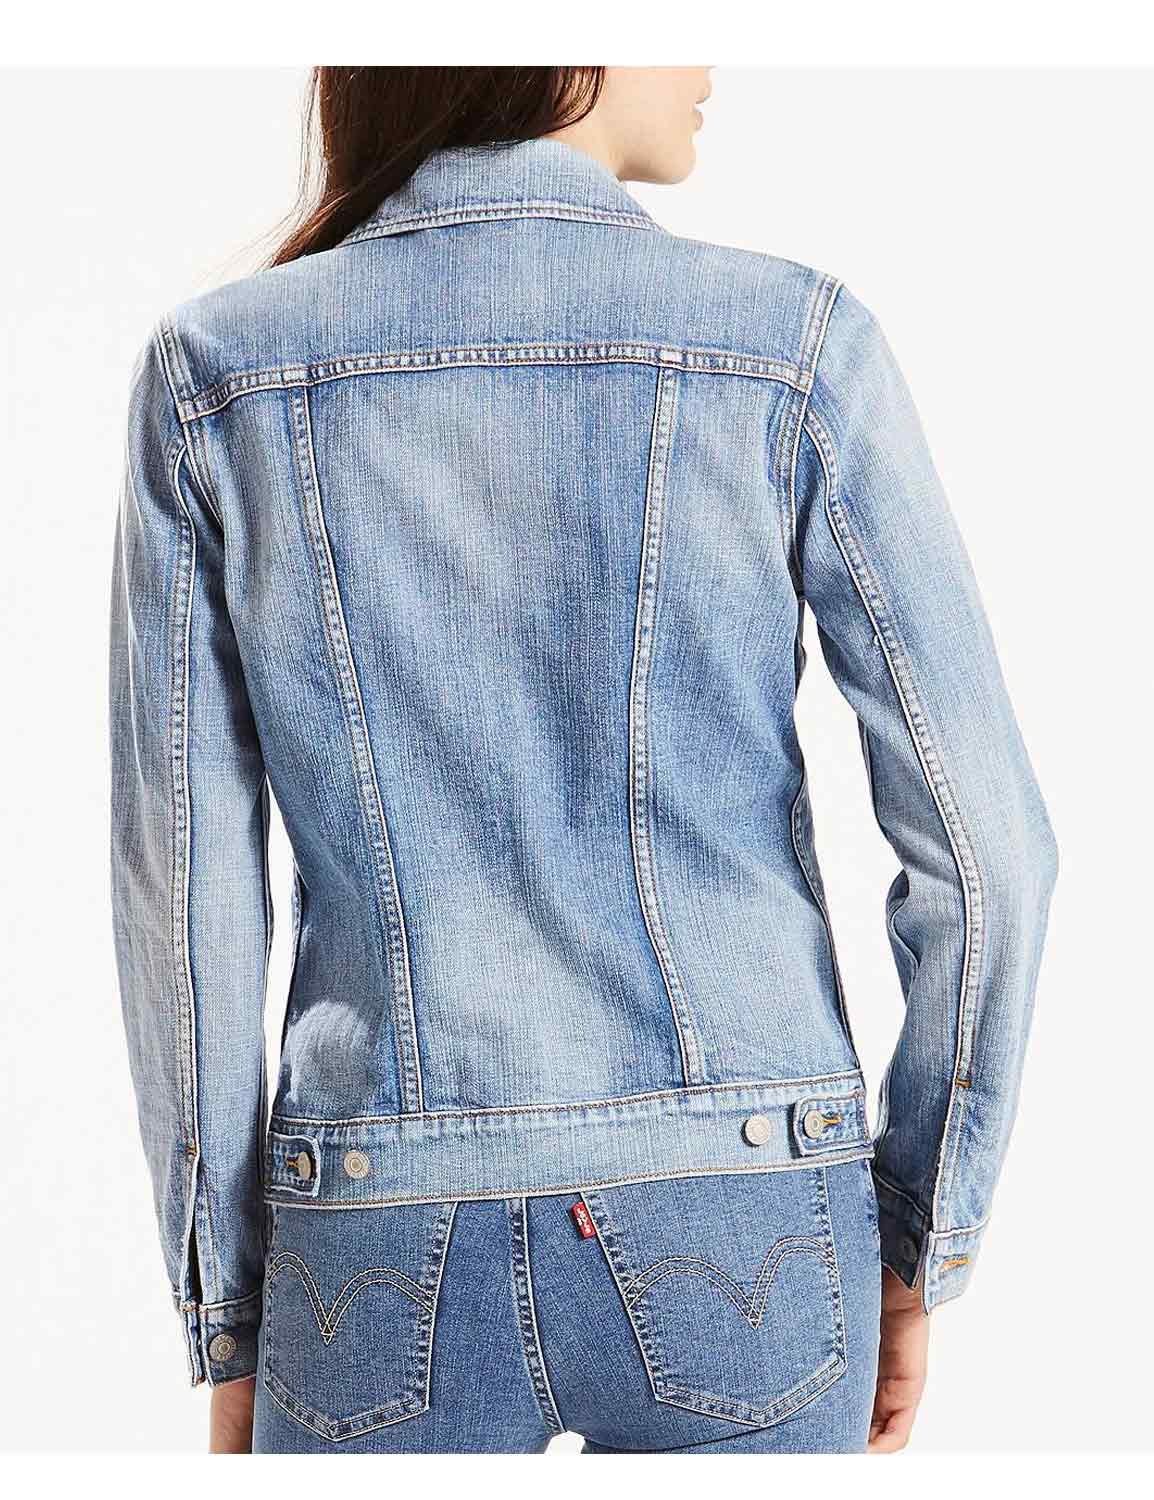 womens-casual-jean-jacket-for-sale